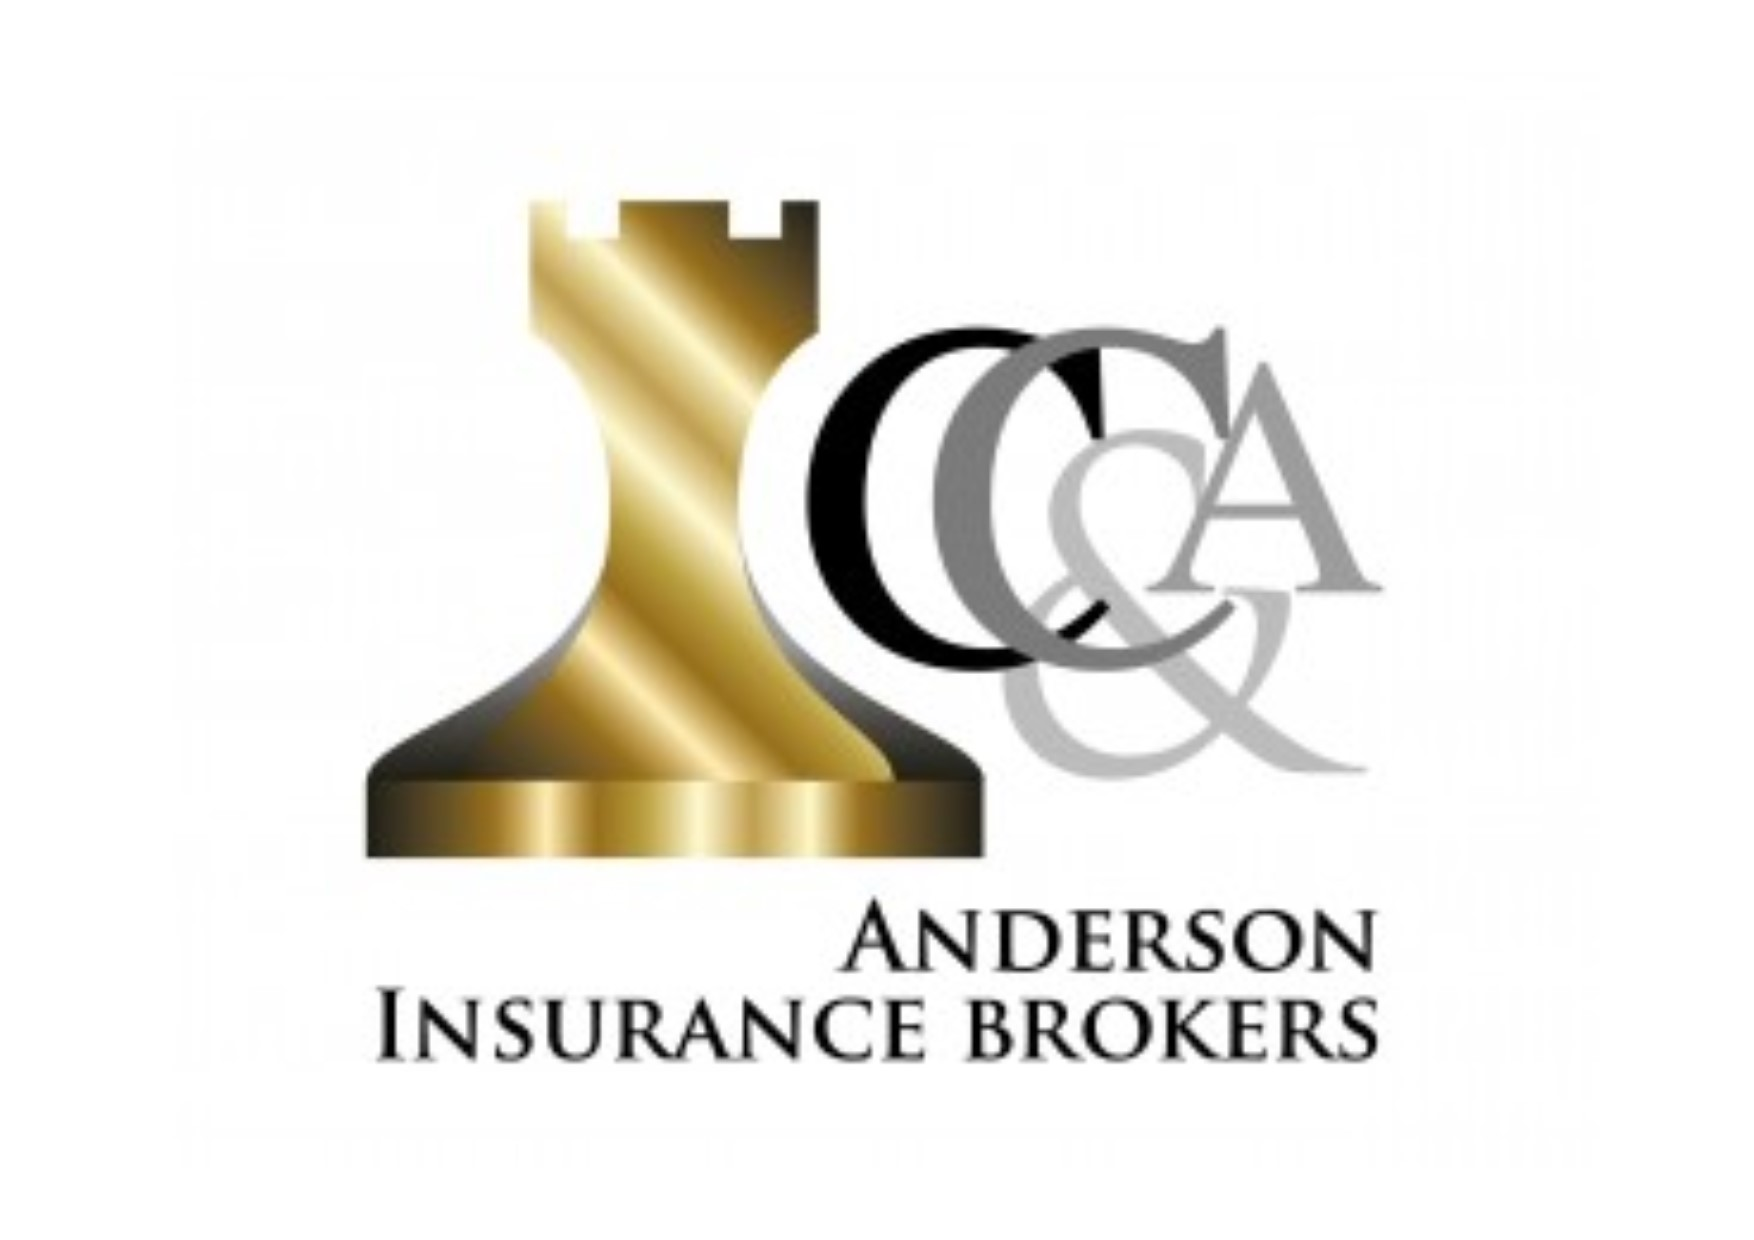 CCandA Anderson Insurance Brokers